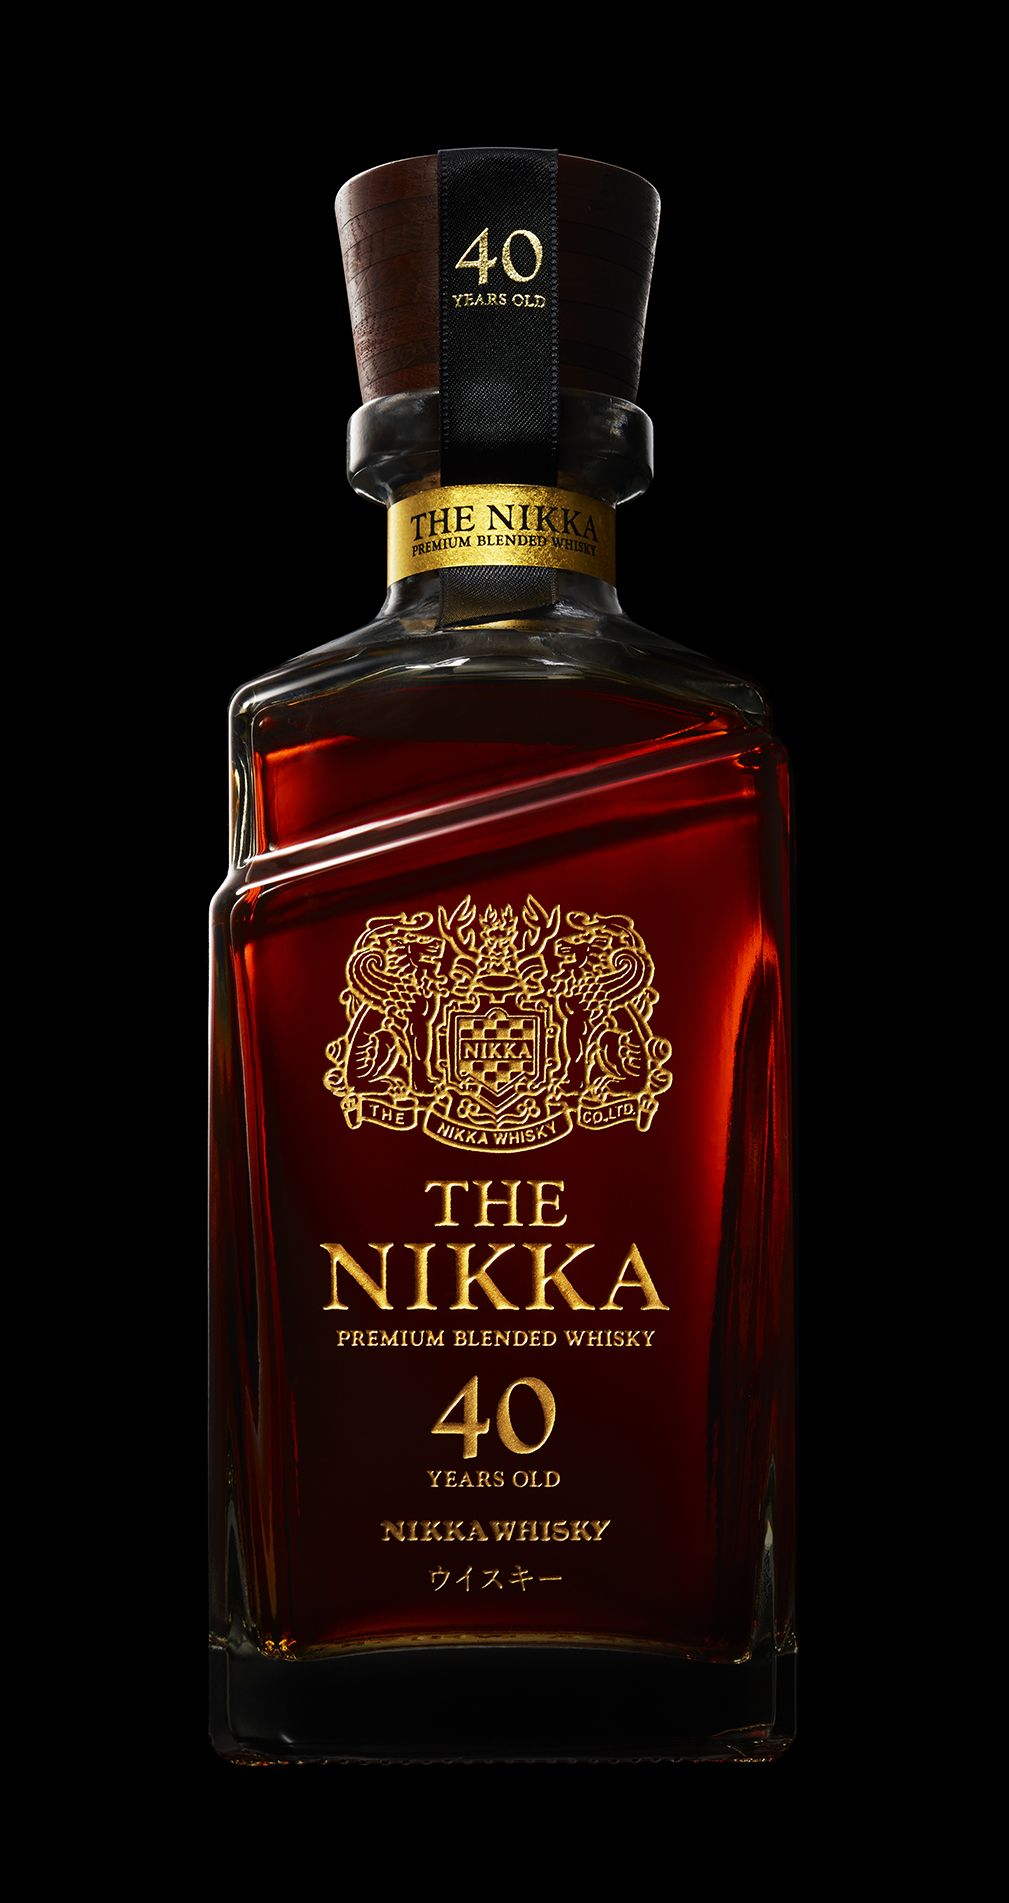 The Nikka 40 Years Old Cigars And Whiskey Wine And Liquor Alcohol Bottles